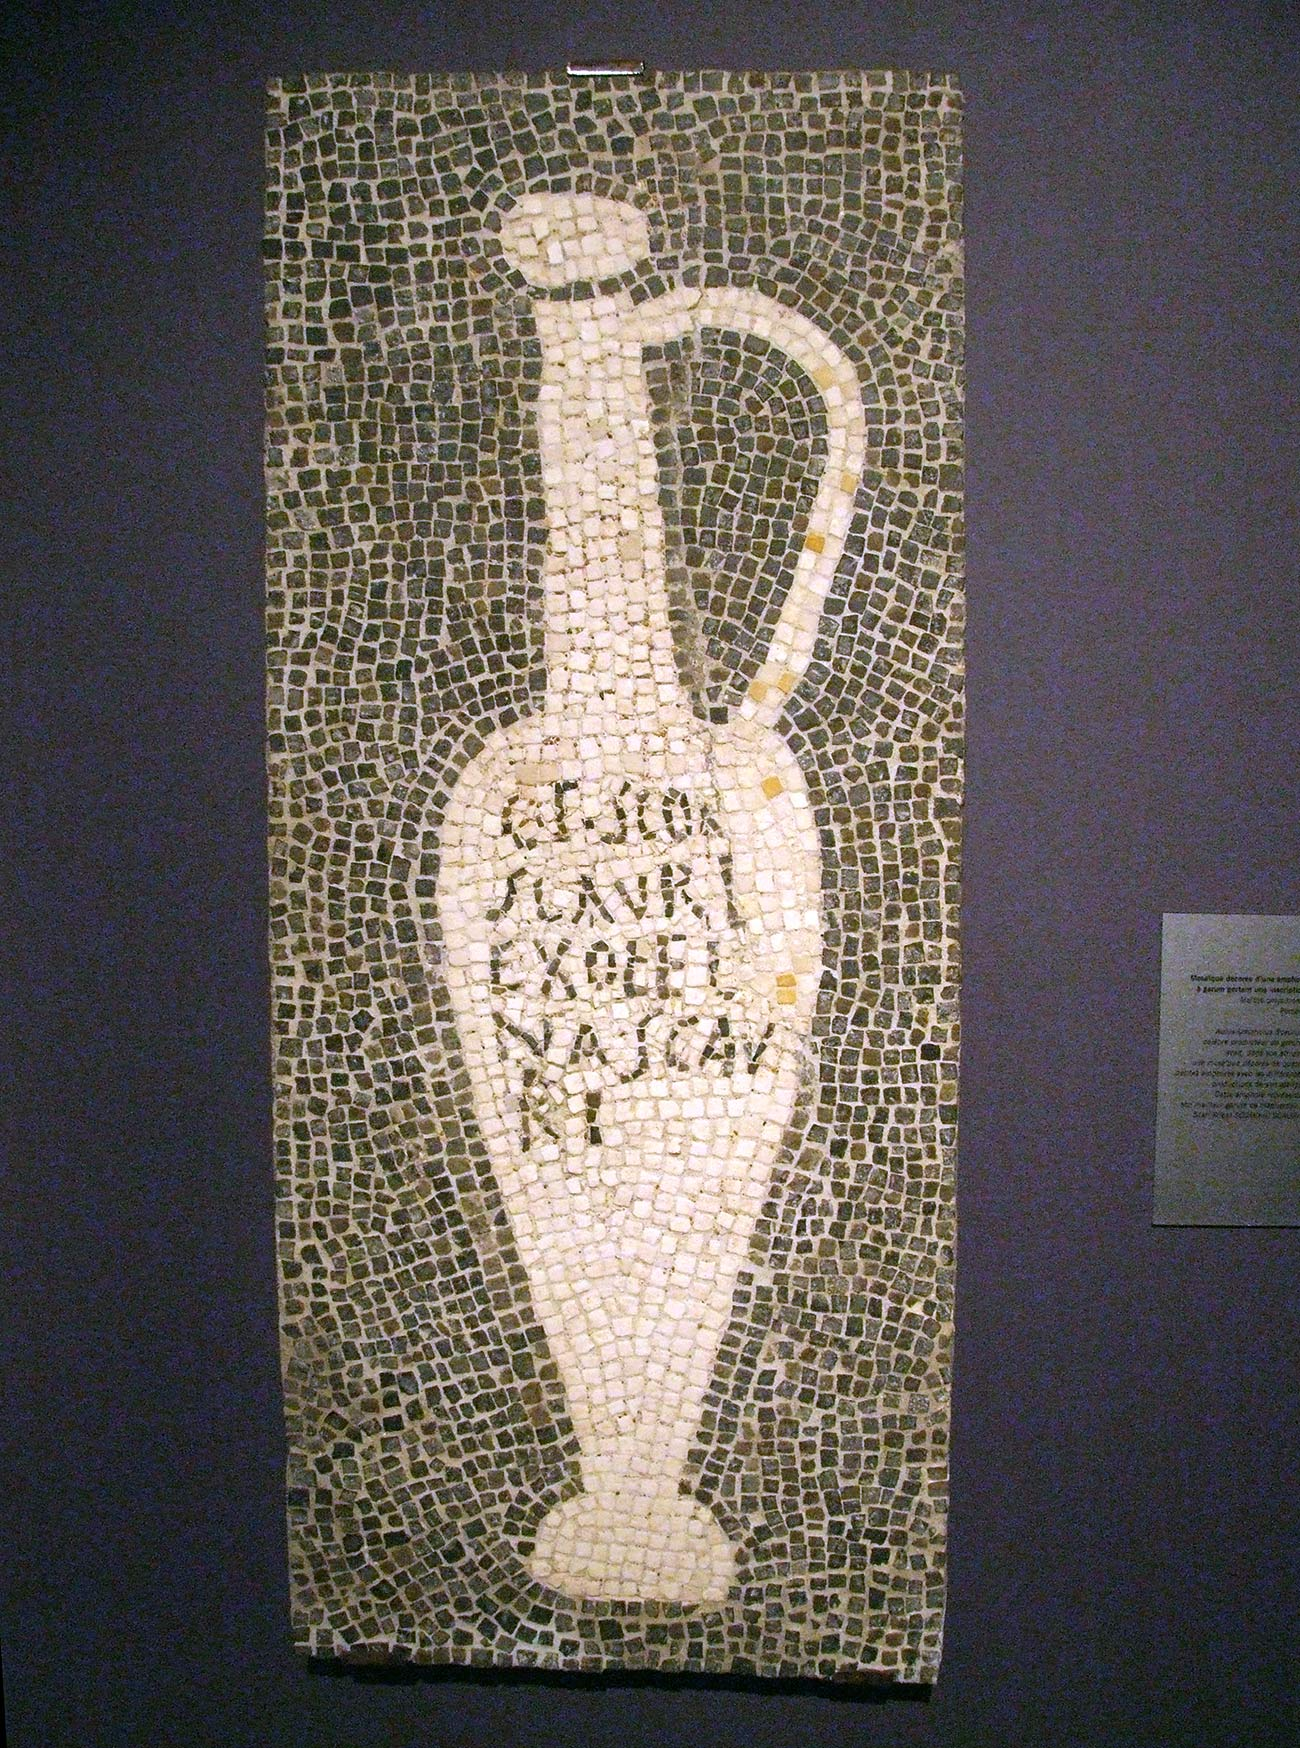 Mosaic hanging on a gallery wall showing a long, tall jar with a large handle and decorated with Latin lettering